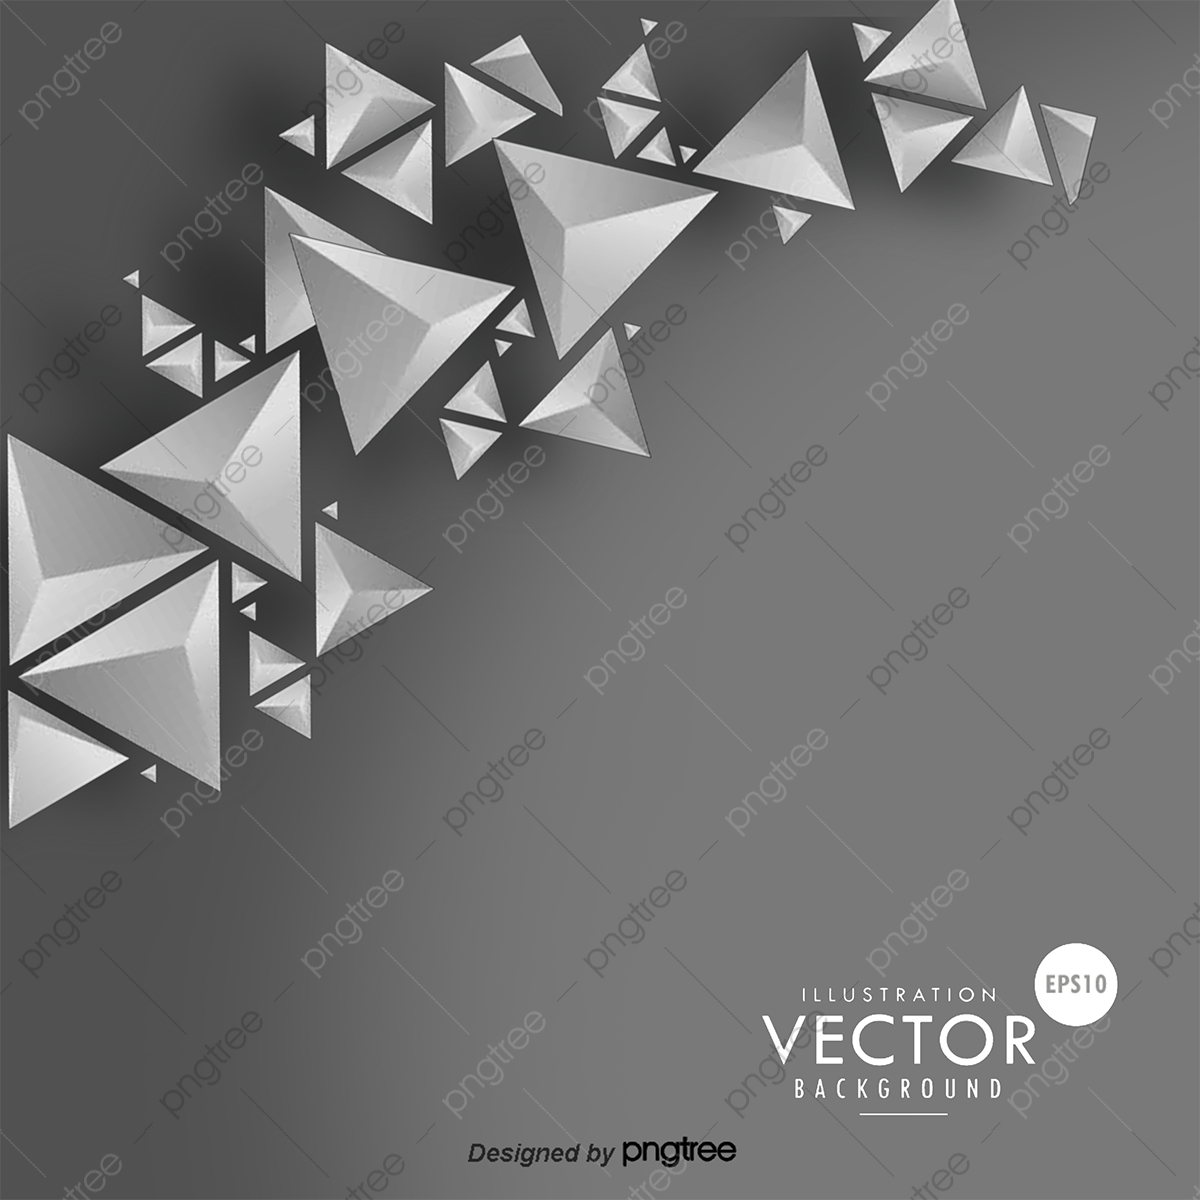 Vector Triangle Background, Hd, Vector, Gray Triangle PNG